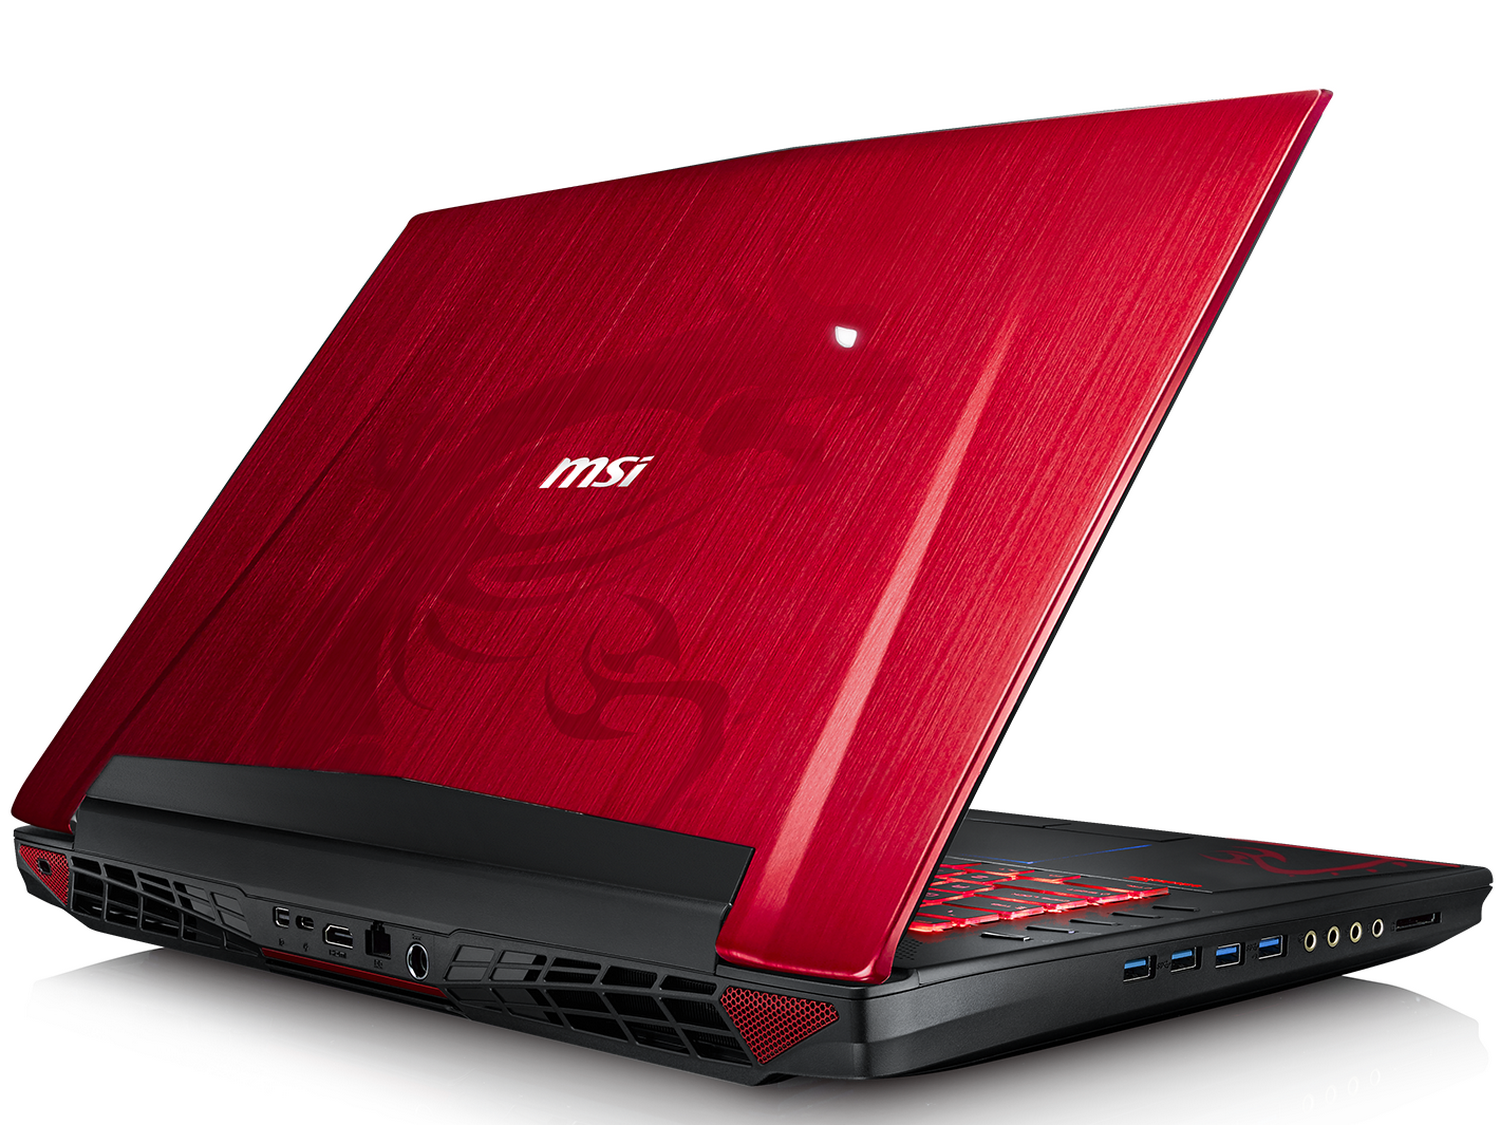 Msi Gt72vr Dragon Edition Now Available With Gtx 1070 Gpu